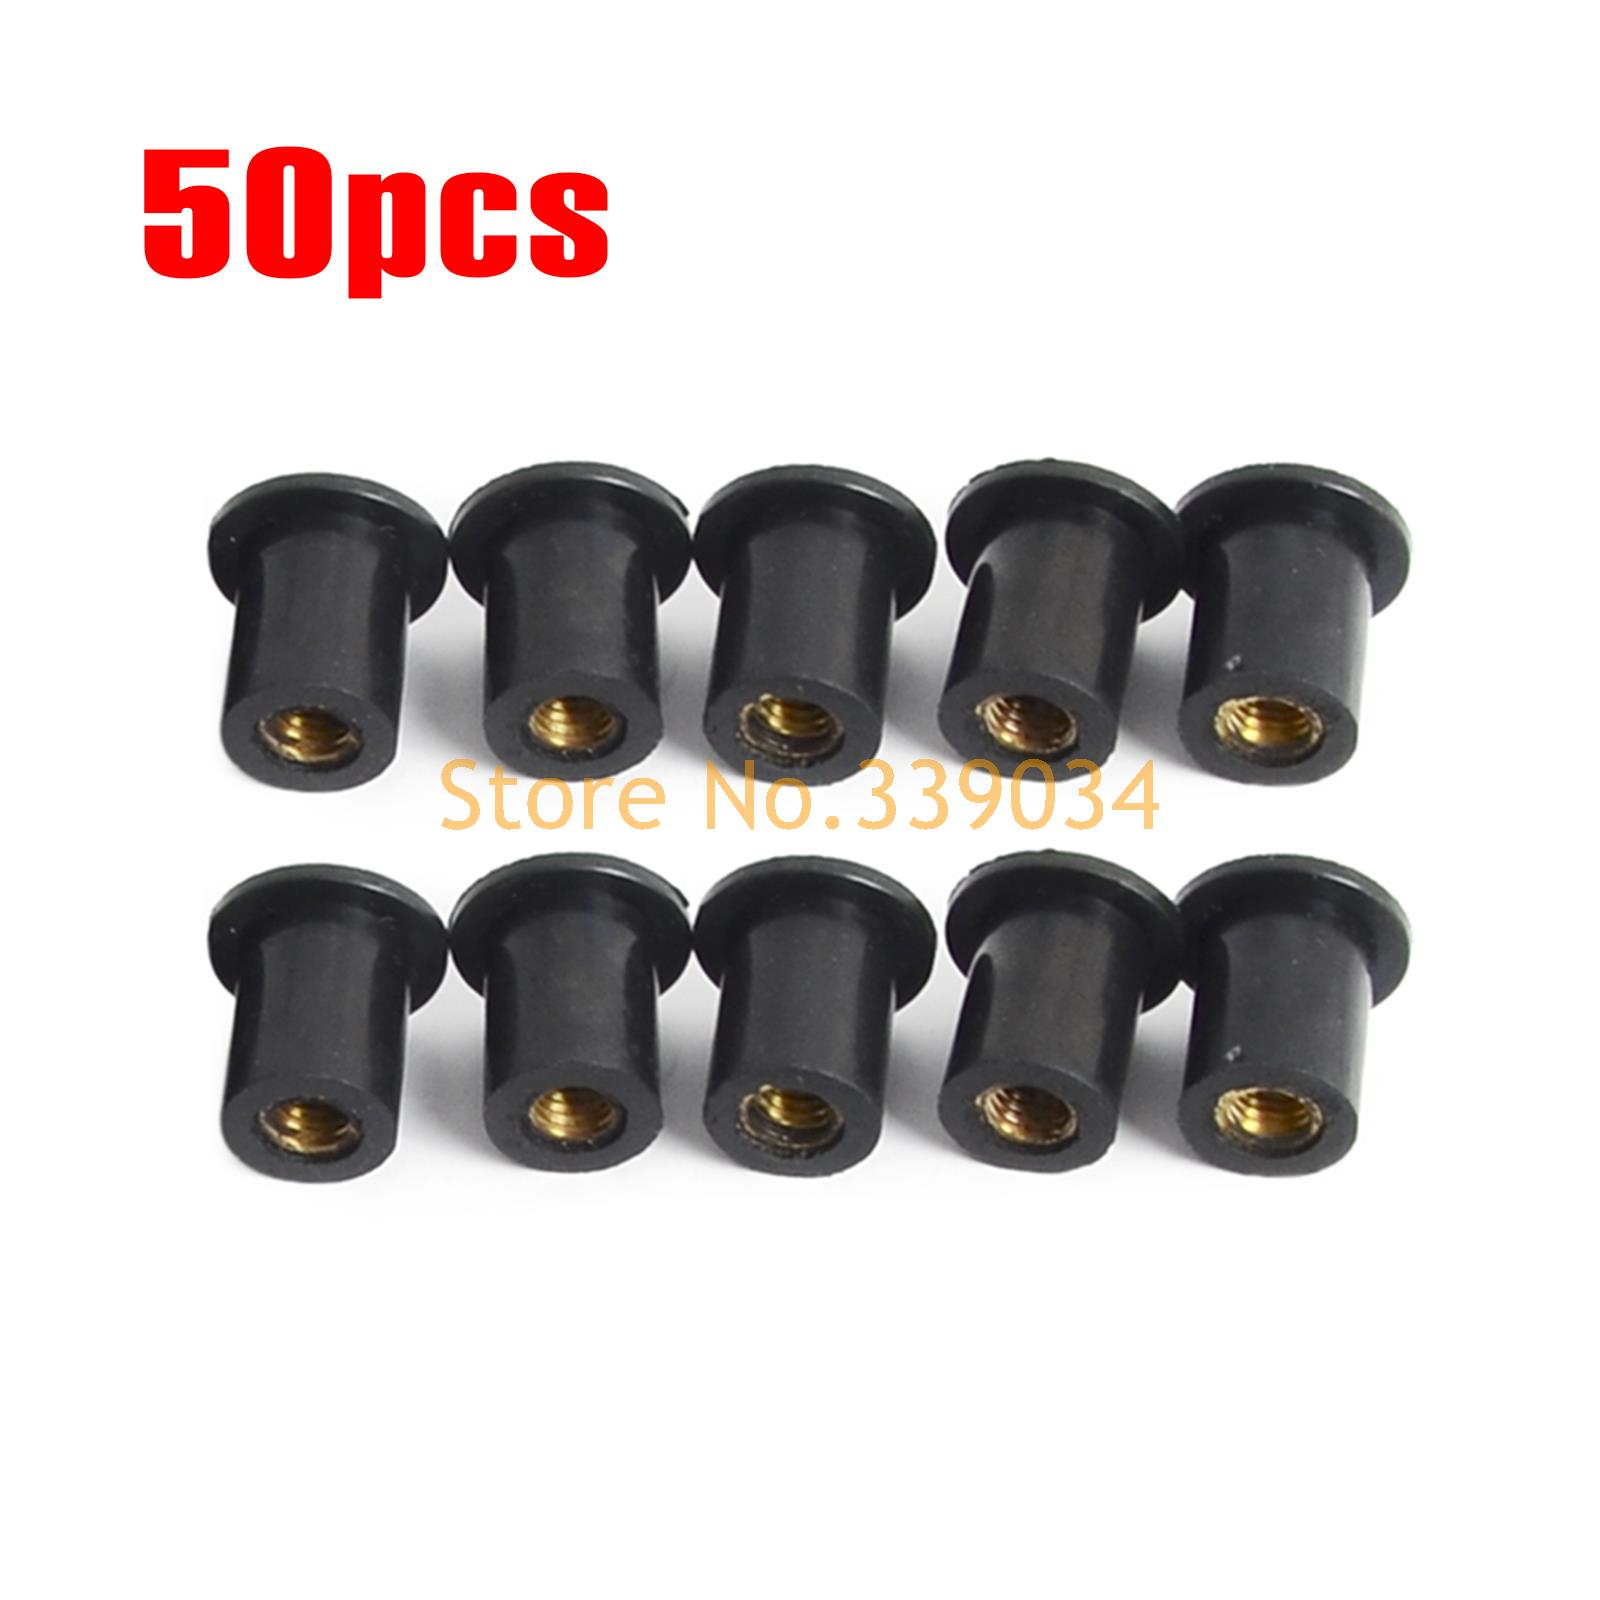 M5 50 Pieces Rubber Grommet Rubber Well Nut Metric Windscreen Nuts For Honda CBR 600  CBR 900  CBR 95 CBR 929 CBR1000 50 pieces metric m4 zinc plated steel countersunk washers 4 x 2 x13 8mm